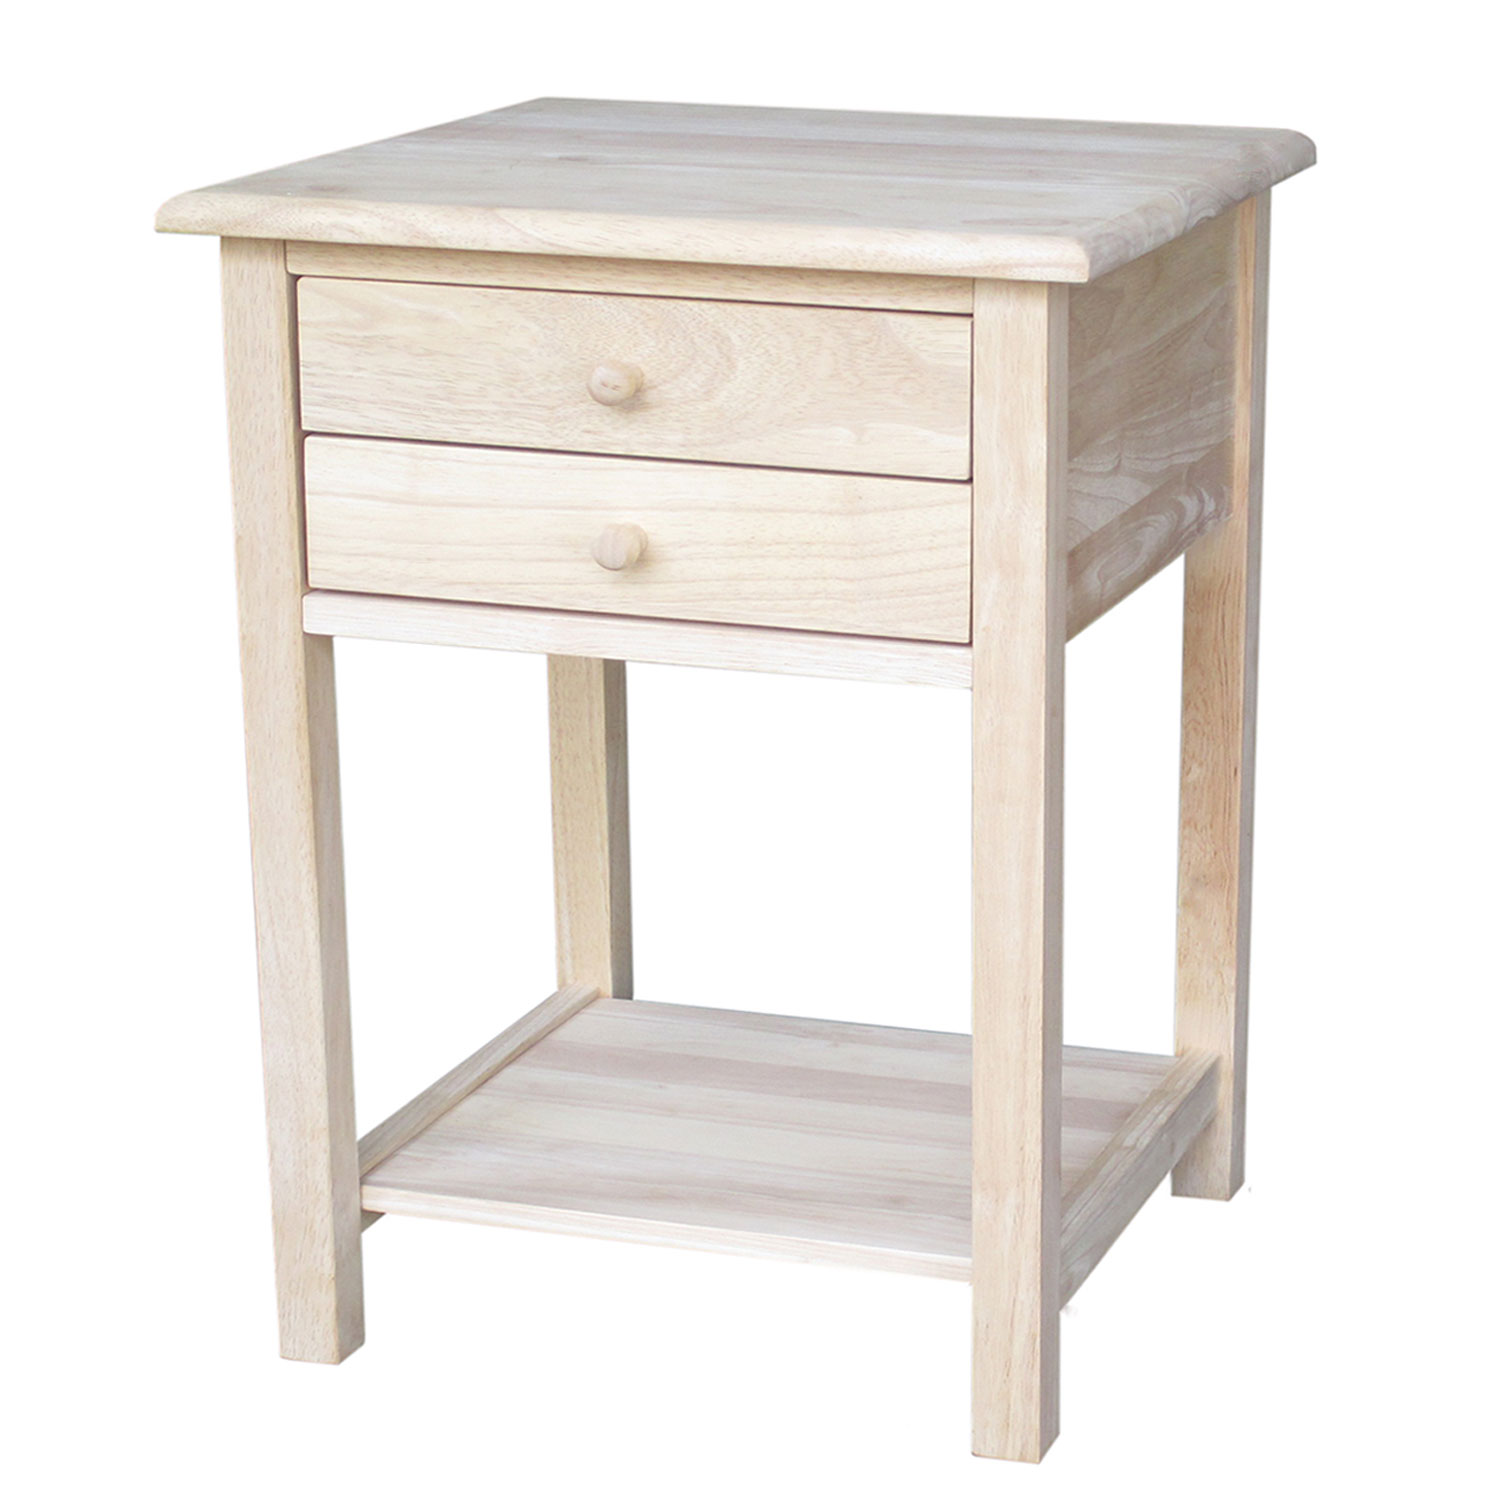 international concepts unfinished wood end table with drawers furniture tables hover zoom nightstand without occasional height pallet desk ideas living room paint colors brown